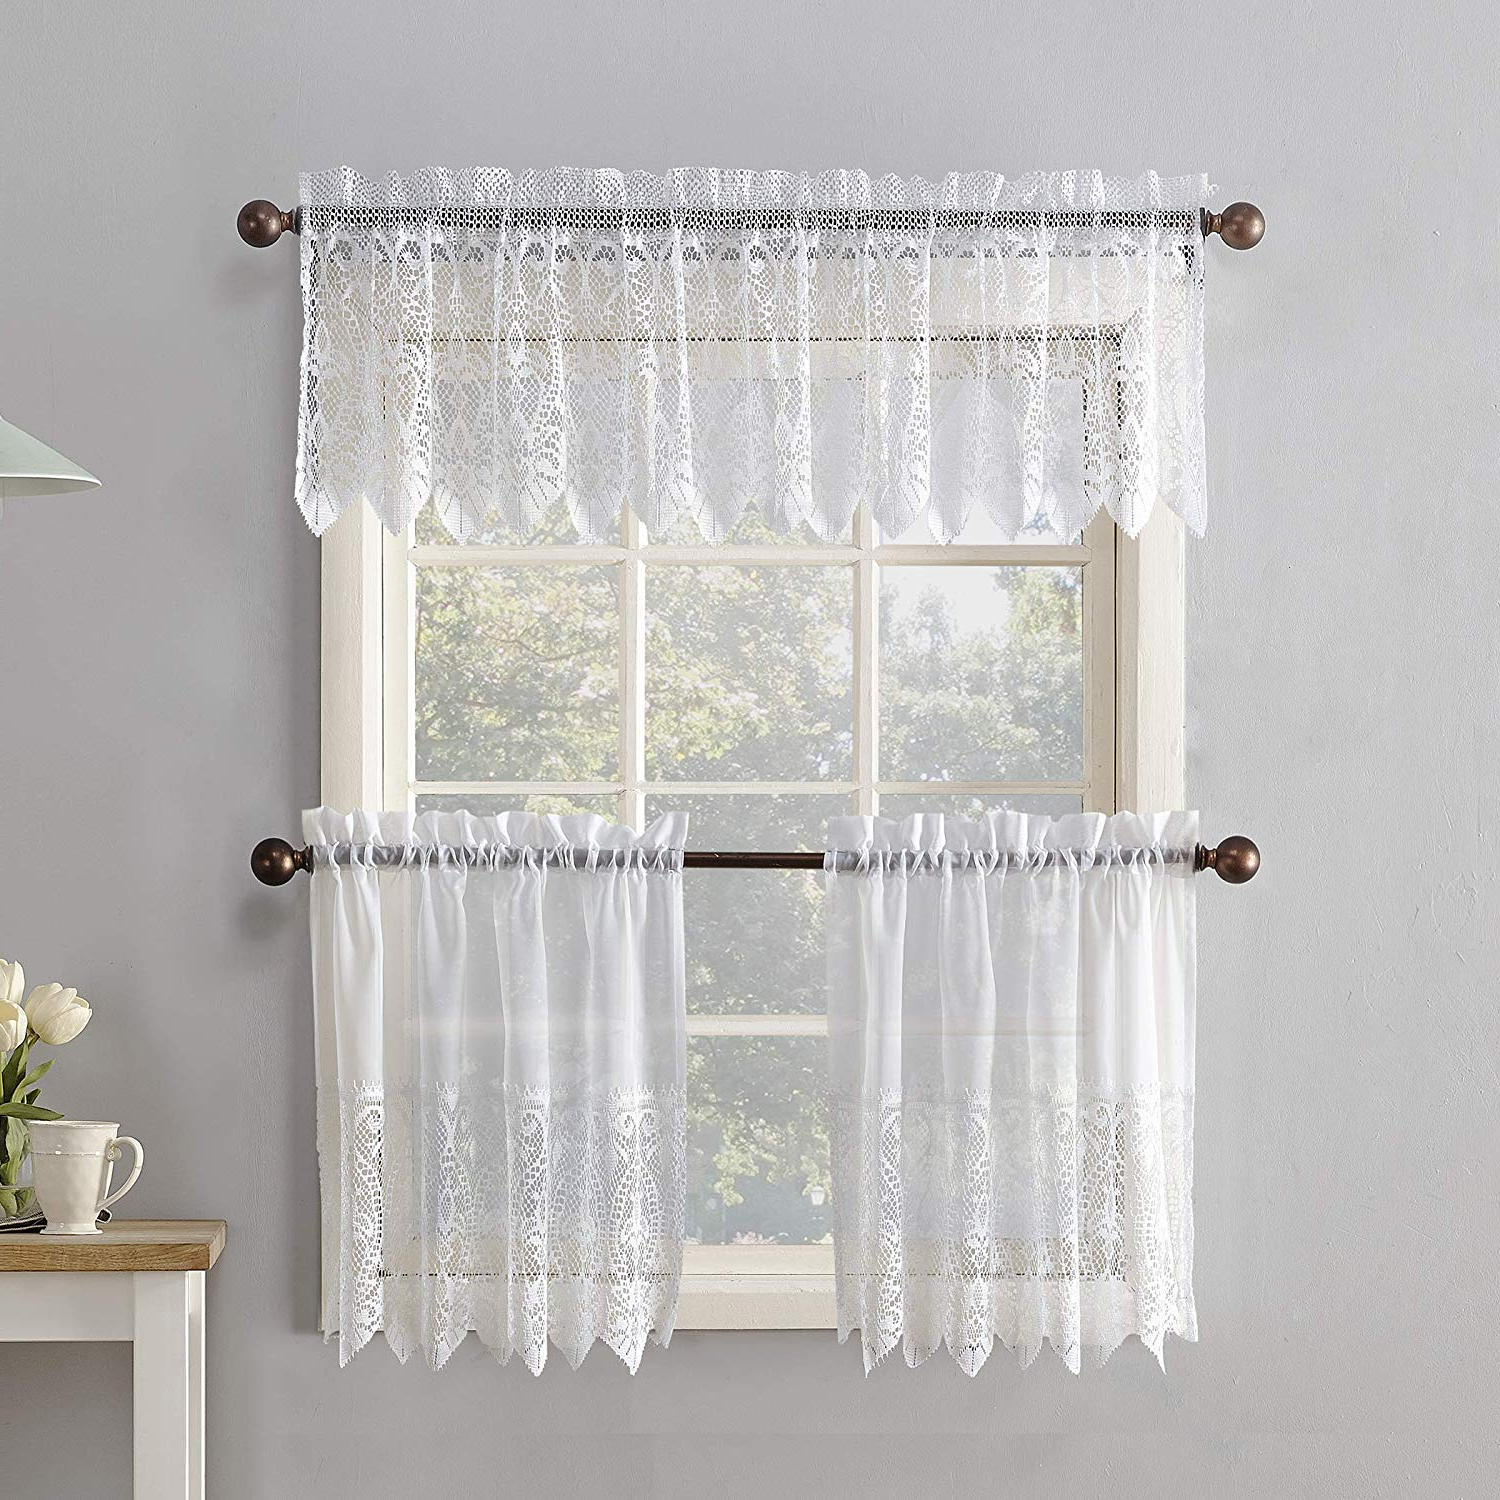 Well Liked Sheer Lace Elongated Kitchen Curtain Tier Pairs Inside No (View 20 of 20)